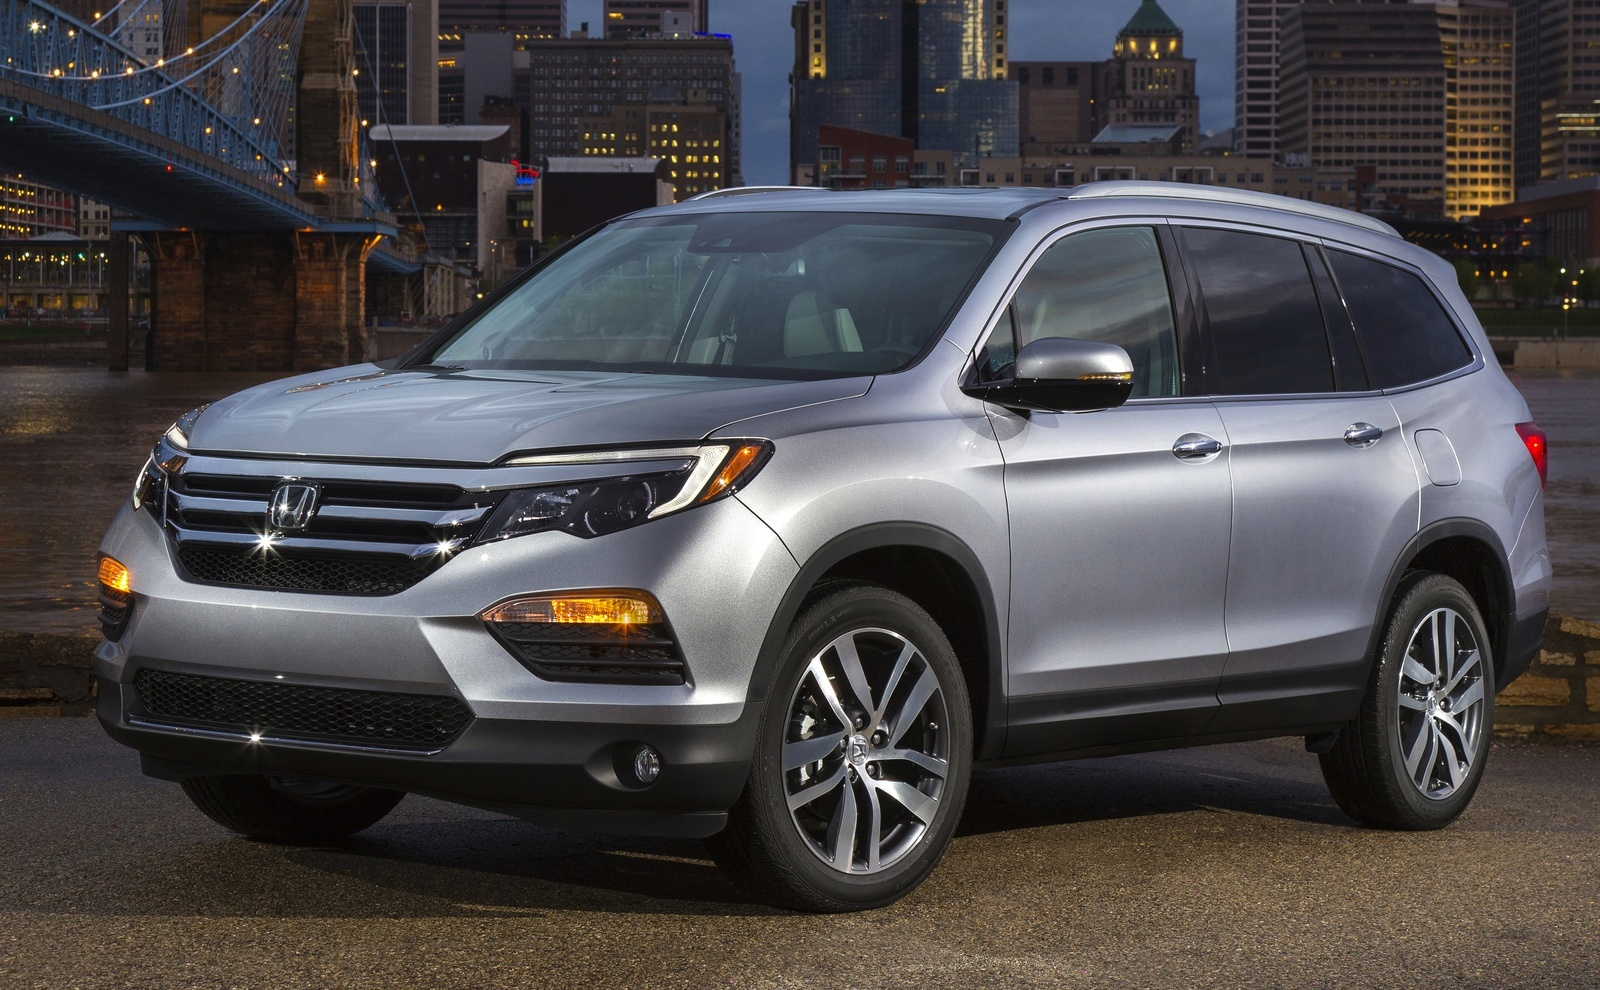 New 2015 / 2016 Honda Pilot For Sale - CarGurus